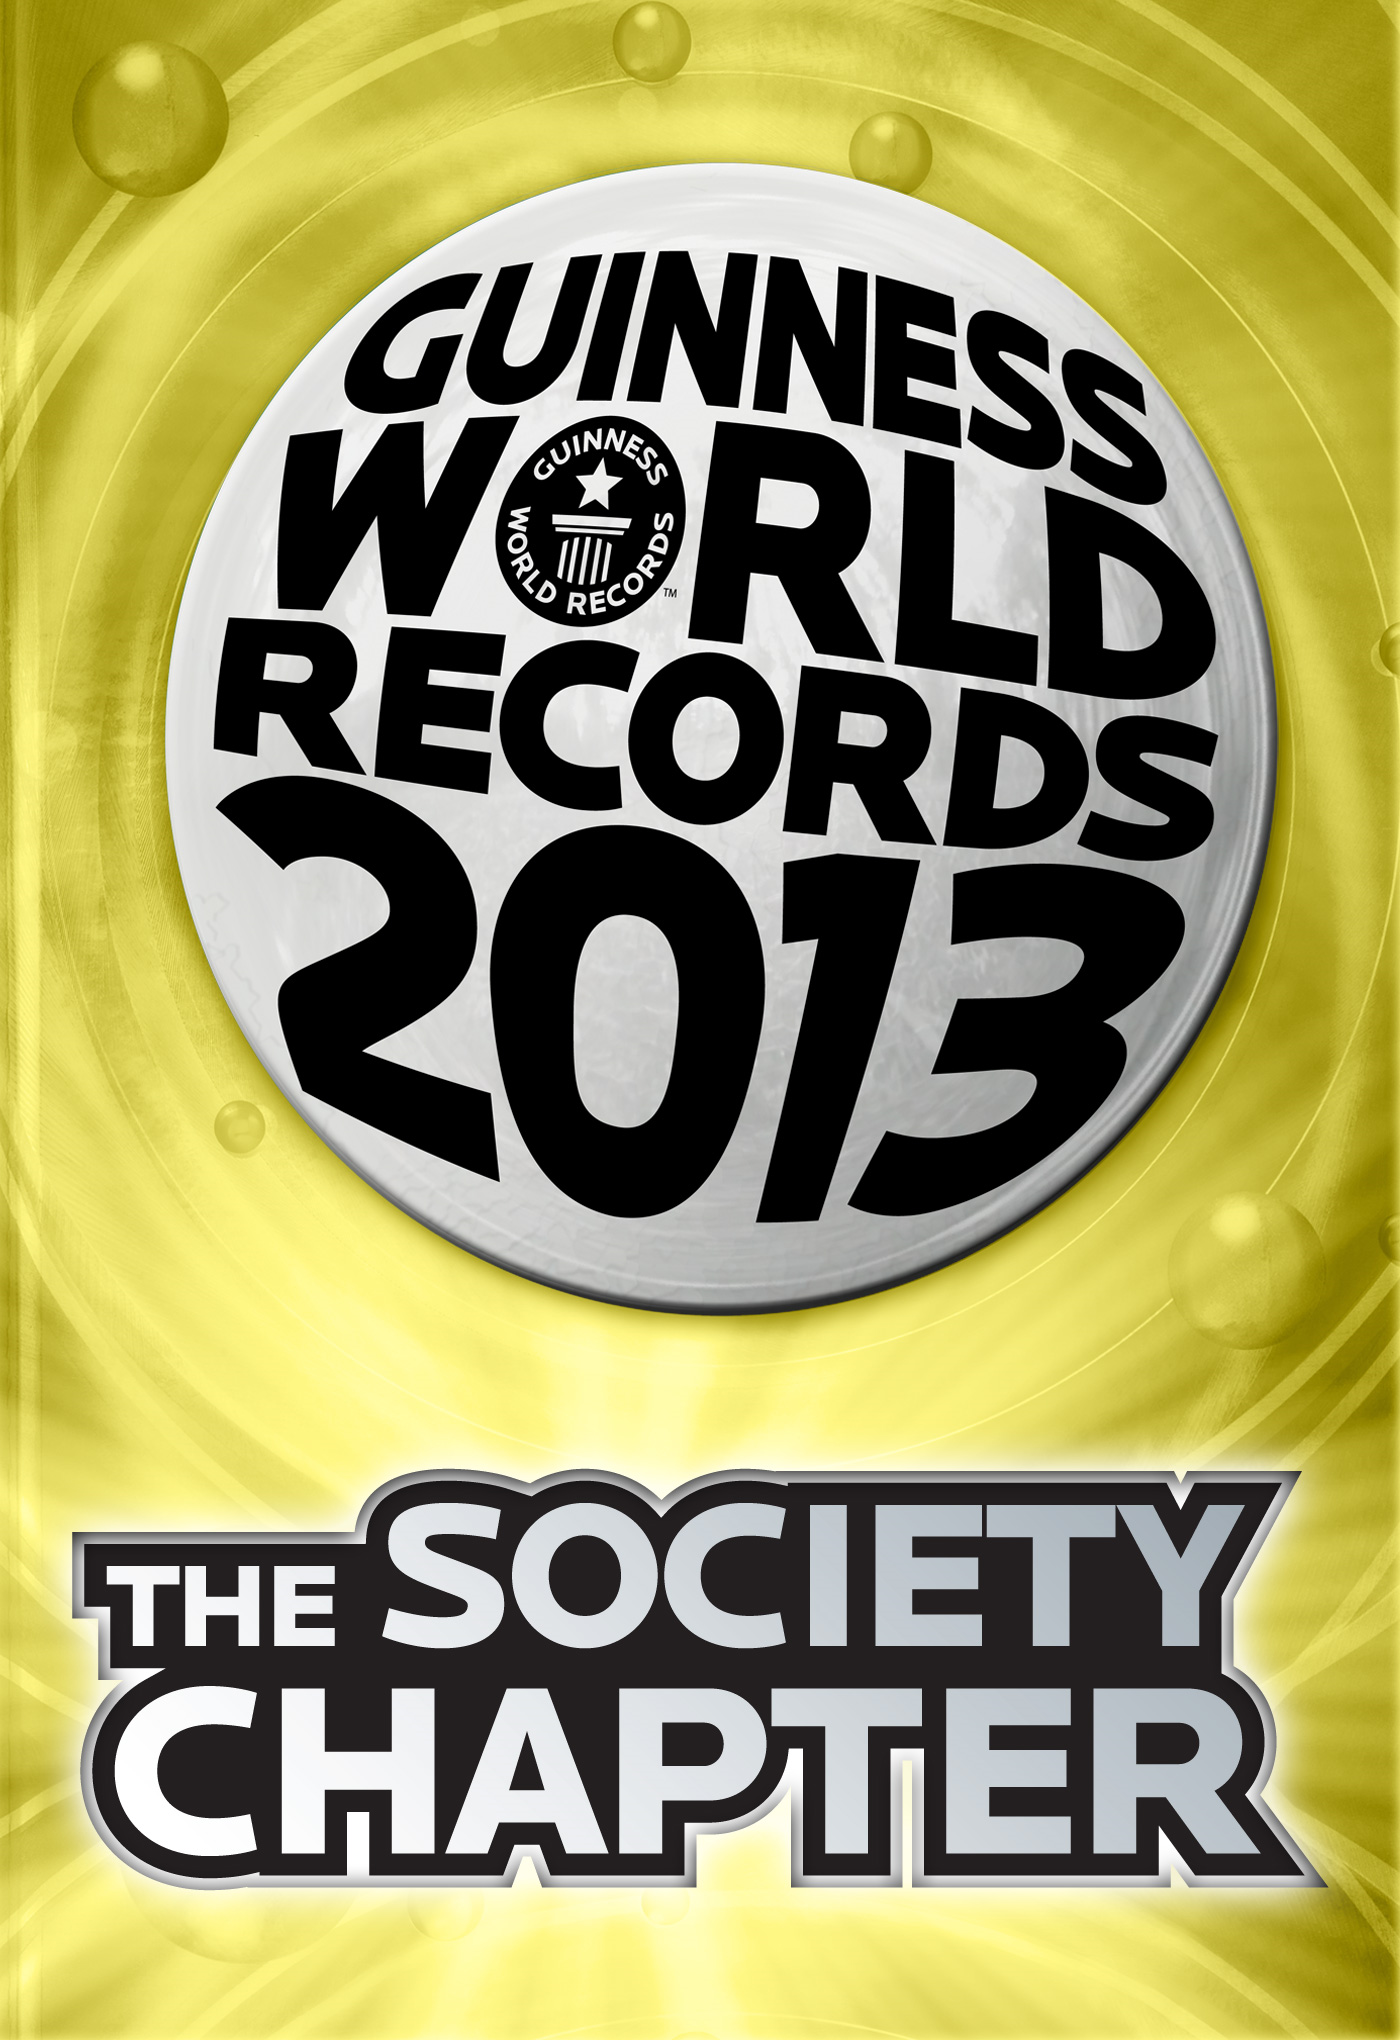 Guinness World Records 2013 - The Society Chapter